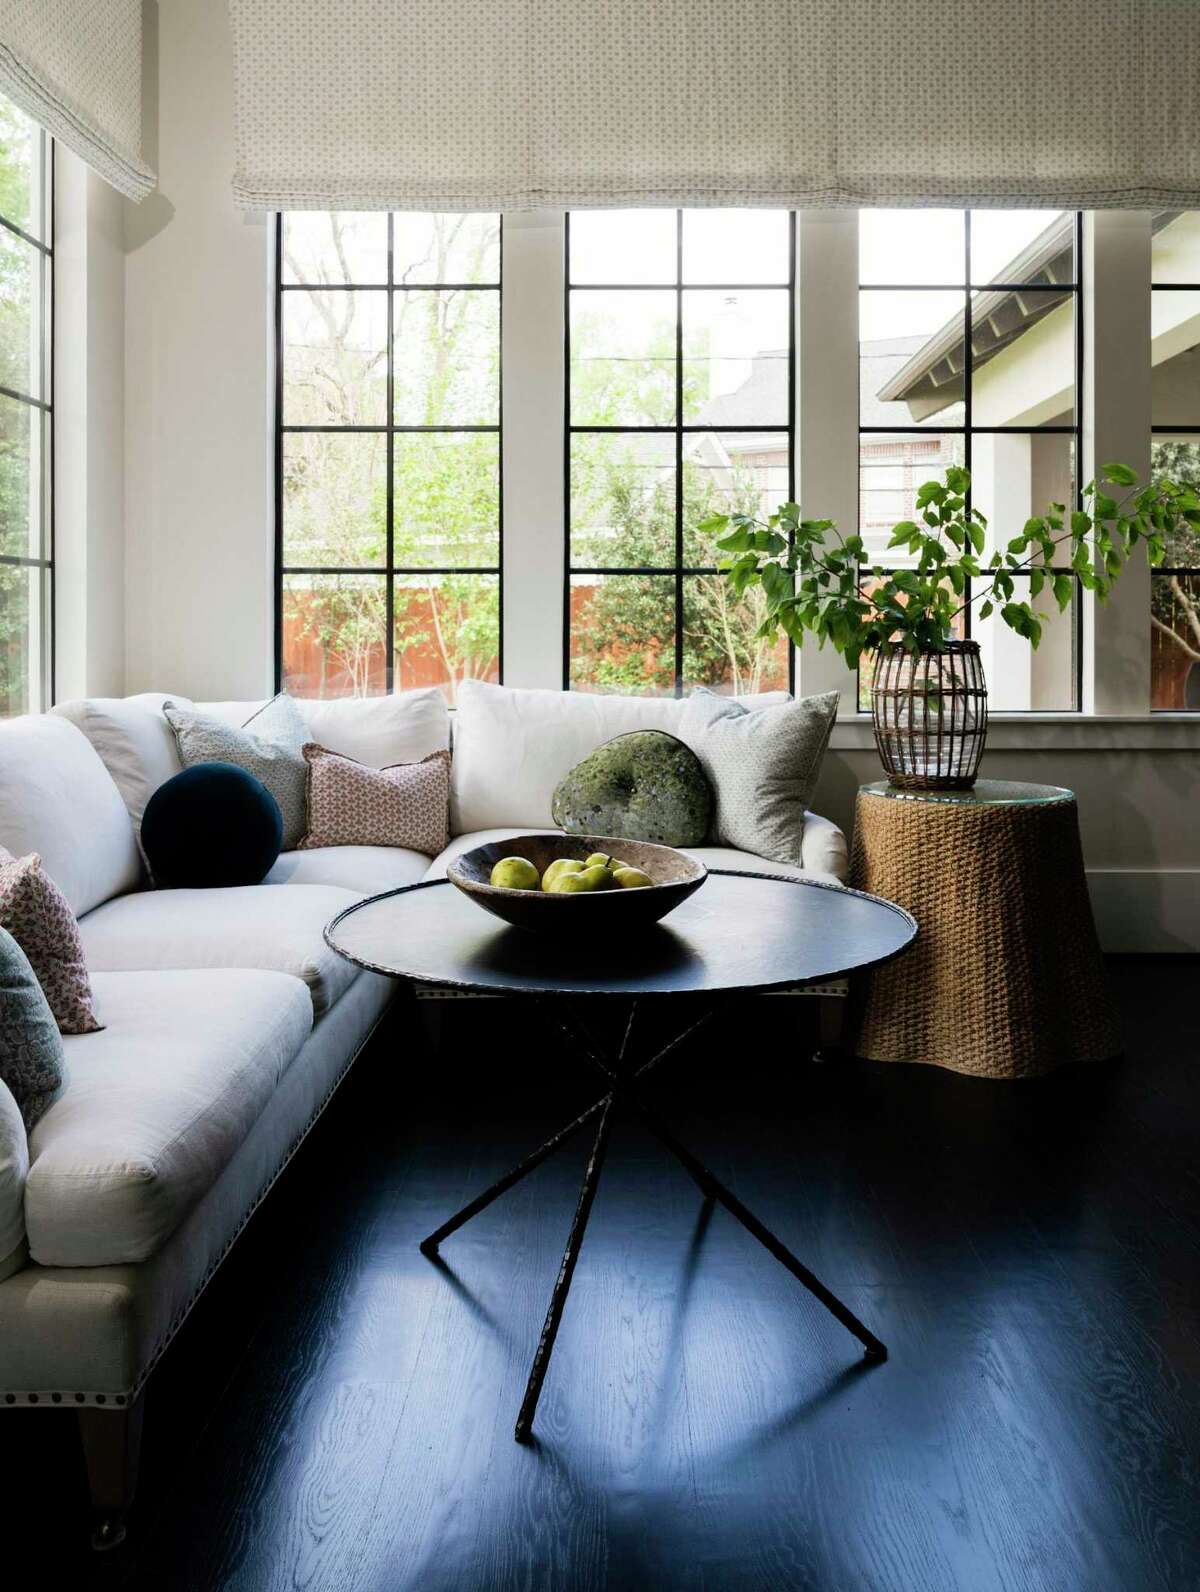 The non-traditional breakfast room has a linen-covered L-shaped sofa with a small table.